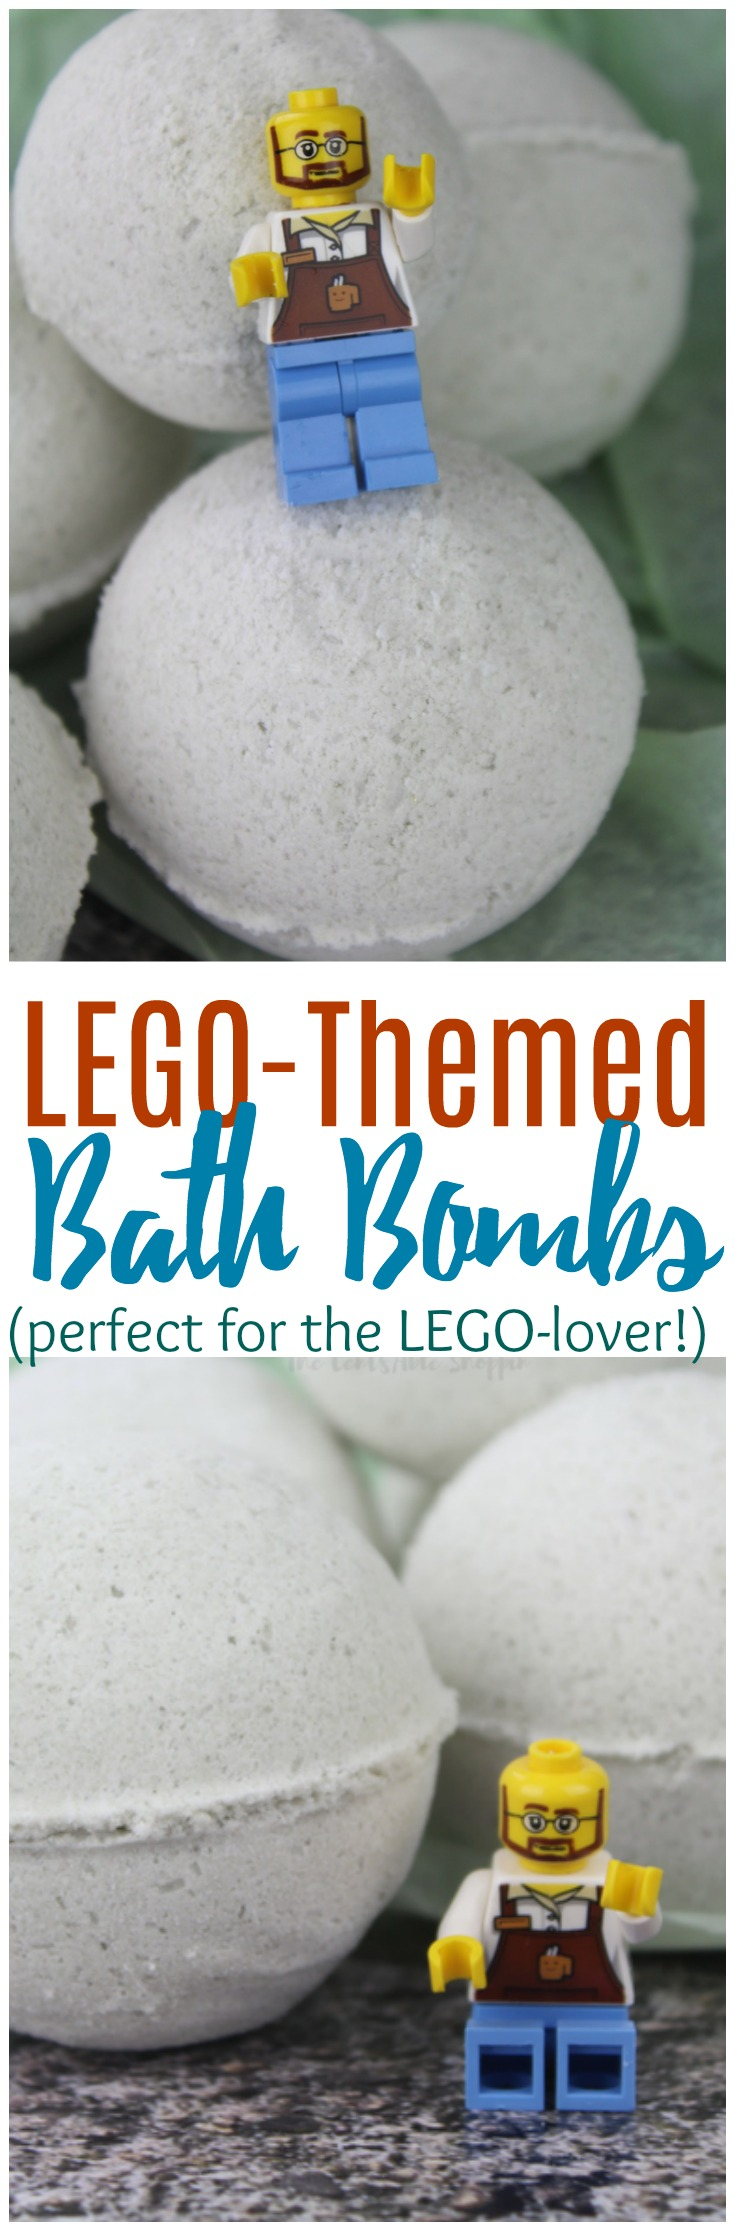 These DIY LEGO Bath Bombs are fun and simple to make. These bath bombs will knock your kids socks off when they see what's inside!